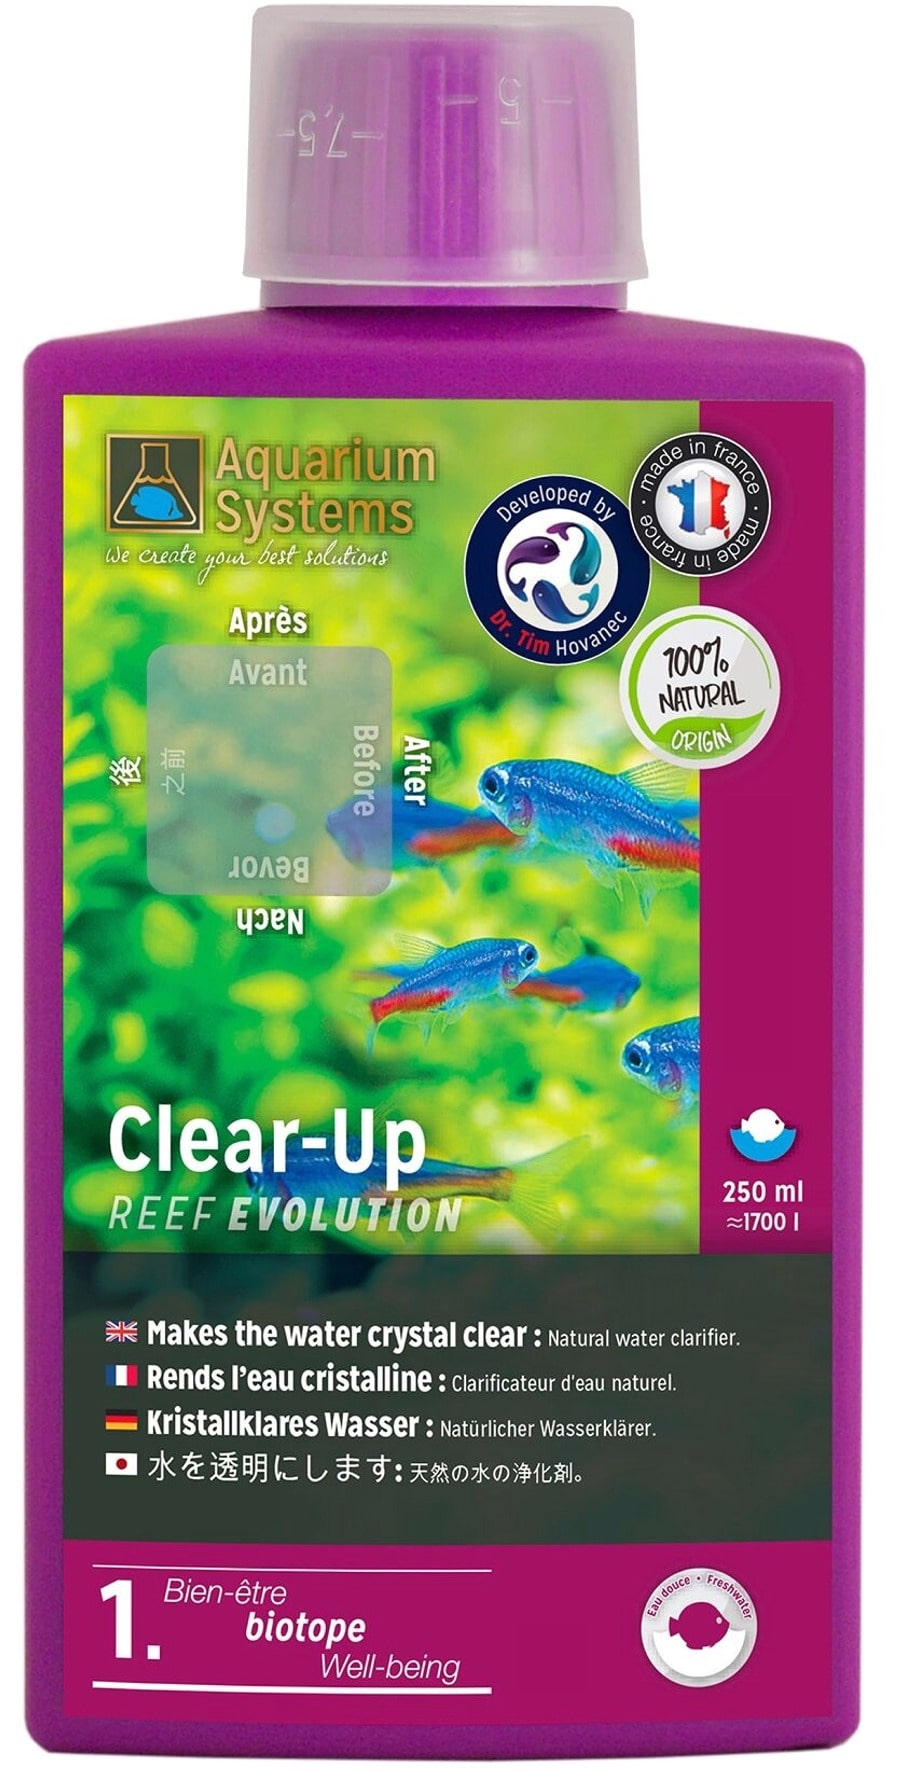 aquarium-systems-clear-up-eau-douce-250-ml-clarificateur-d-eau-naturel-pour-aquarium-min